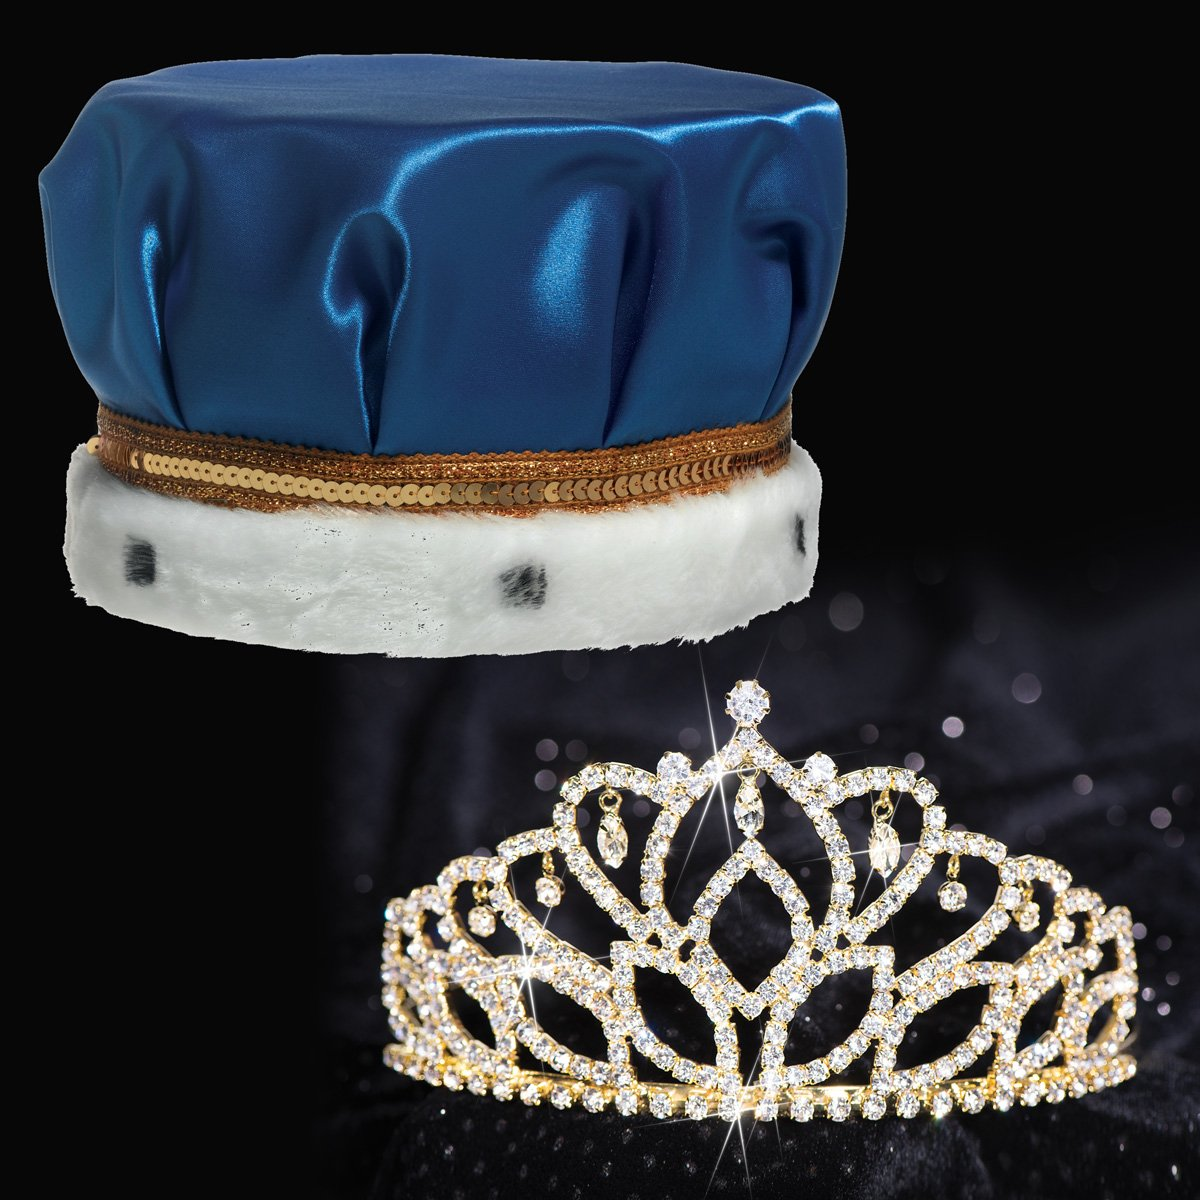 Blue Satin King Crown and Gold Mirabella Queen Tiara Royalty Set